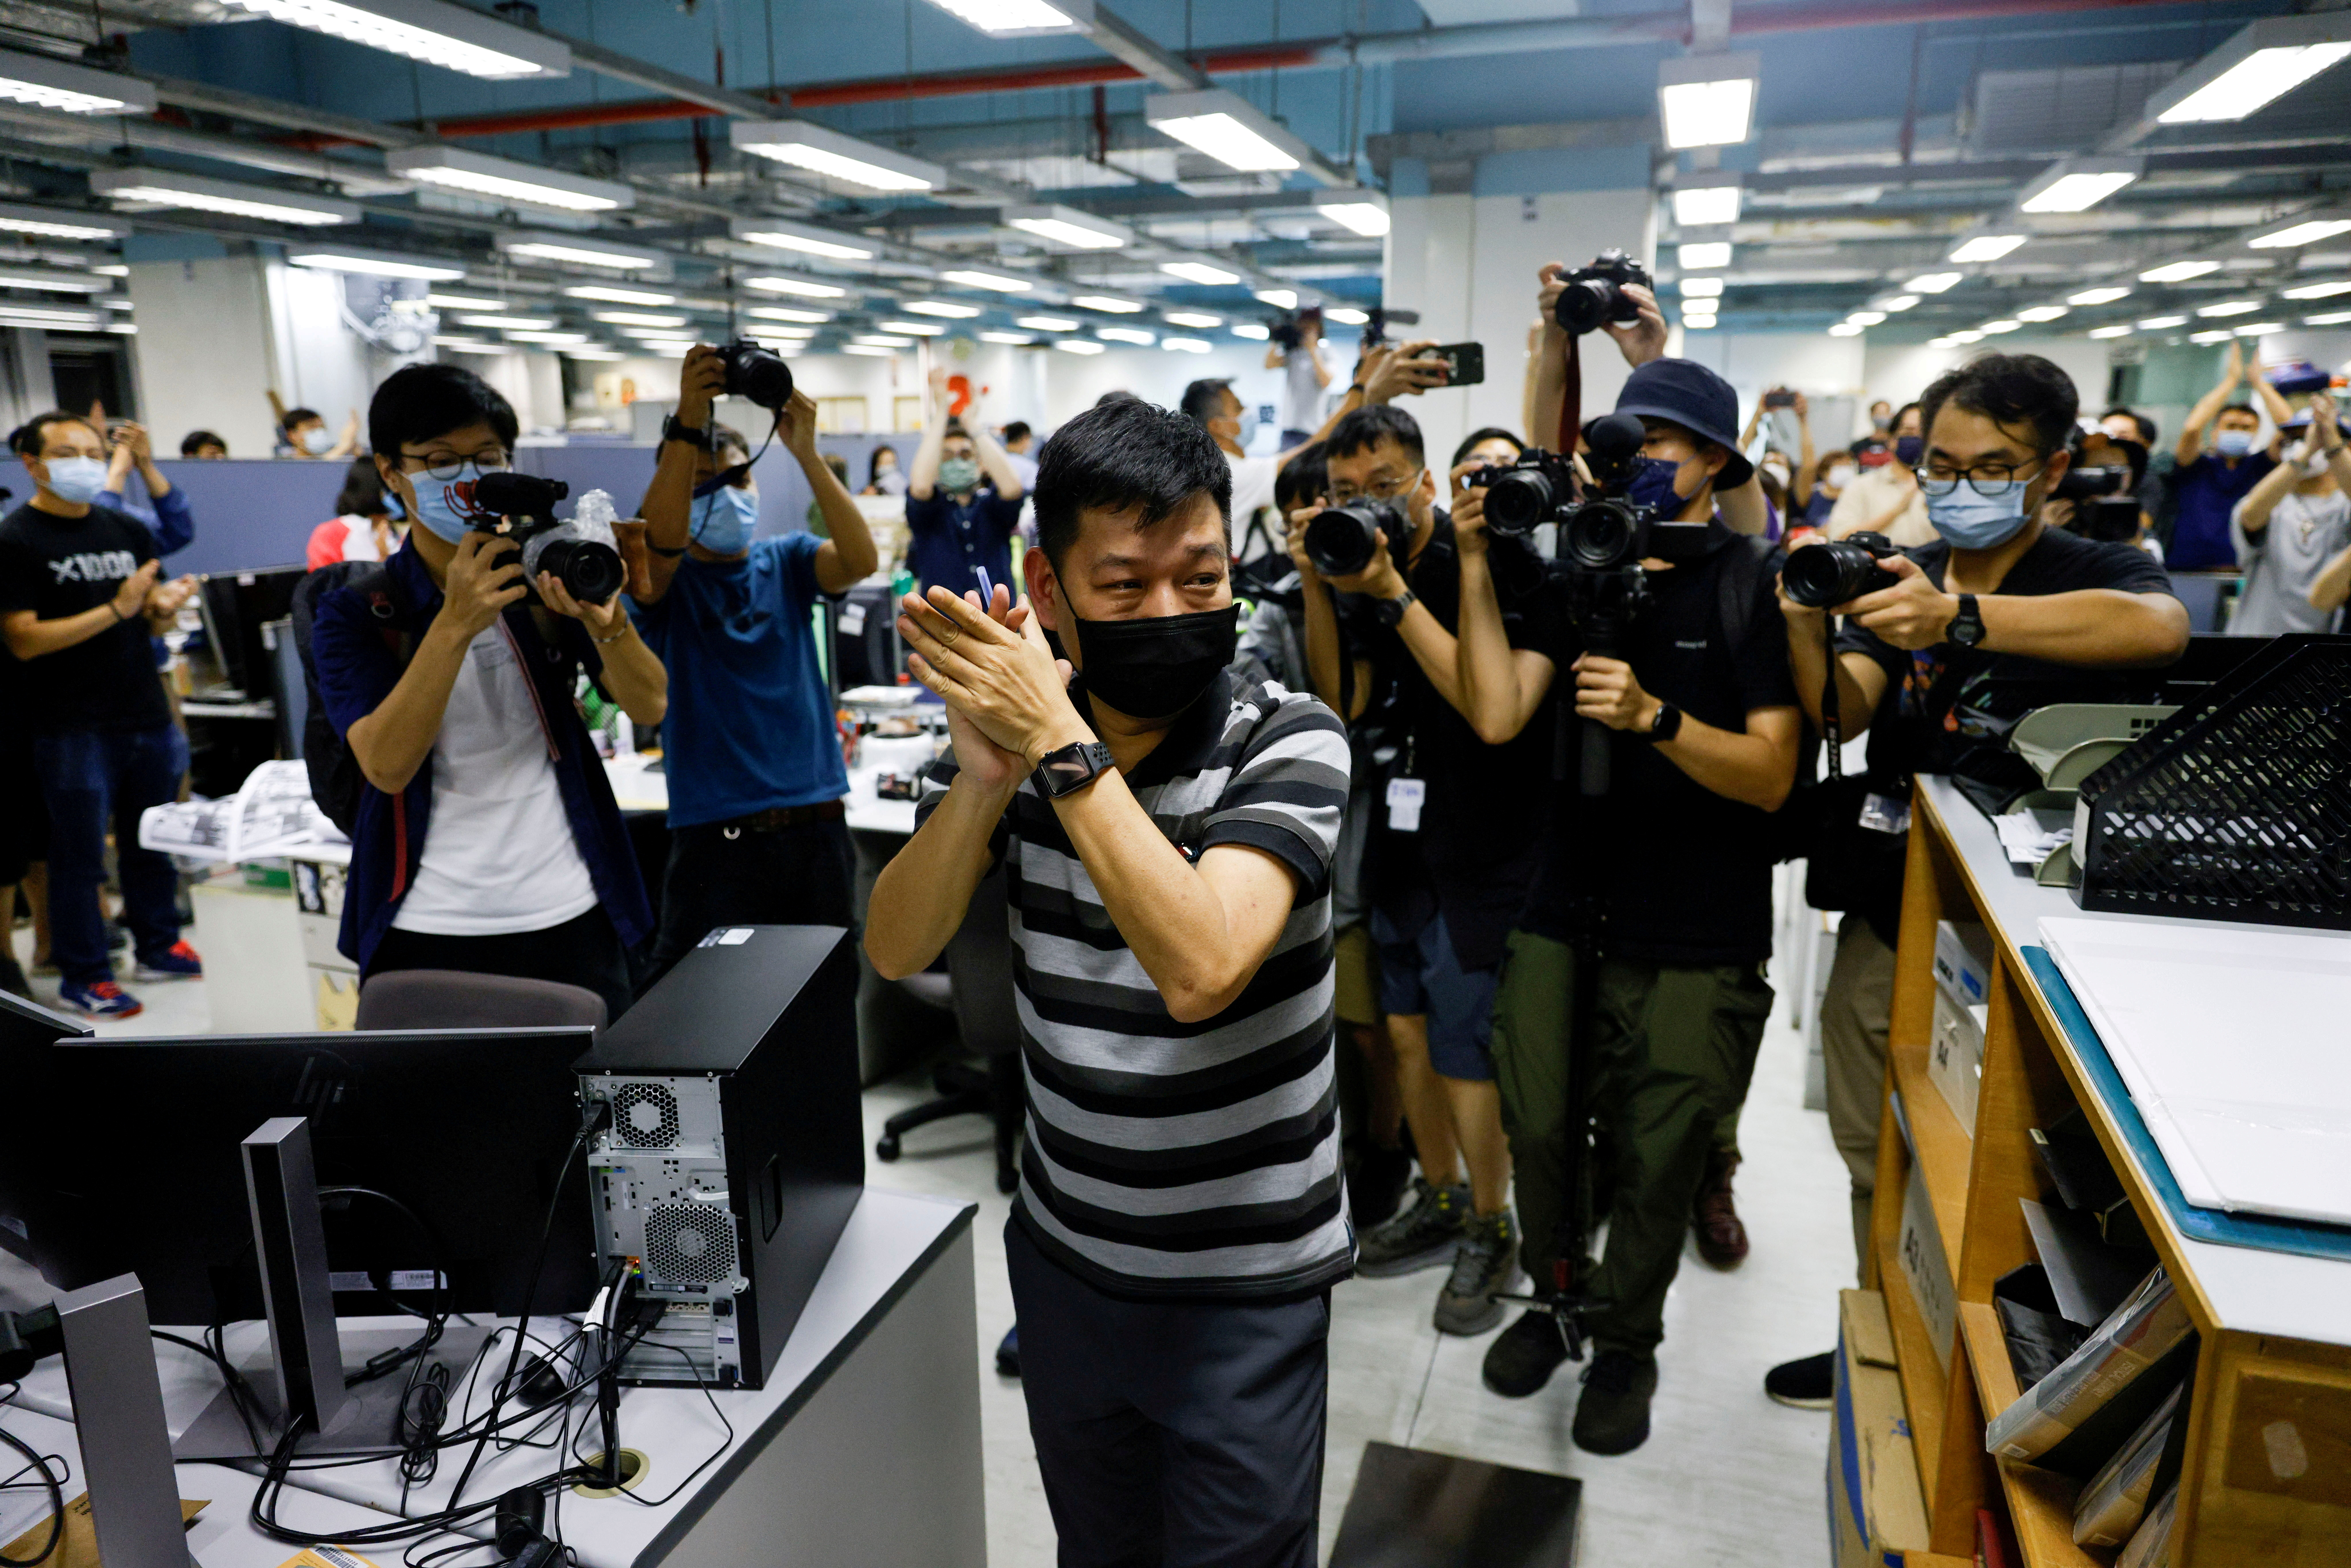 FILE PHOTO: Lam Man-chung, Executive Editor-in-Chief of Apple Daily reacts on the day of the newspaper's final edition in Hong Kong, China June 23, 2021. REUTERS/Tyrone Siu/File Photo/File Photo